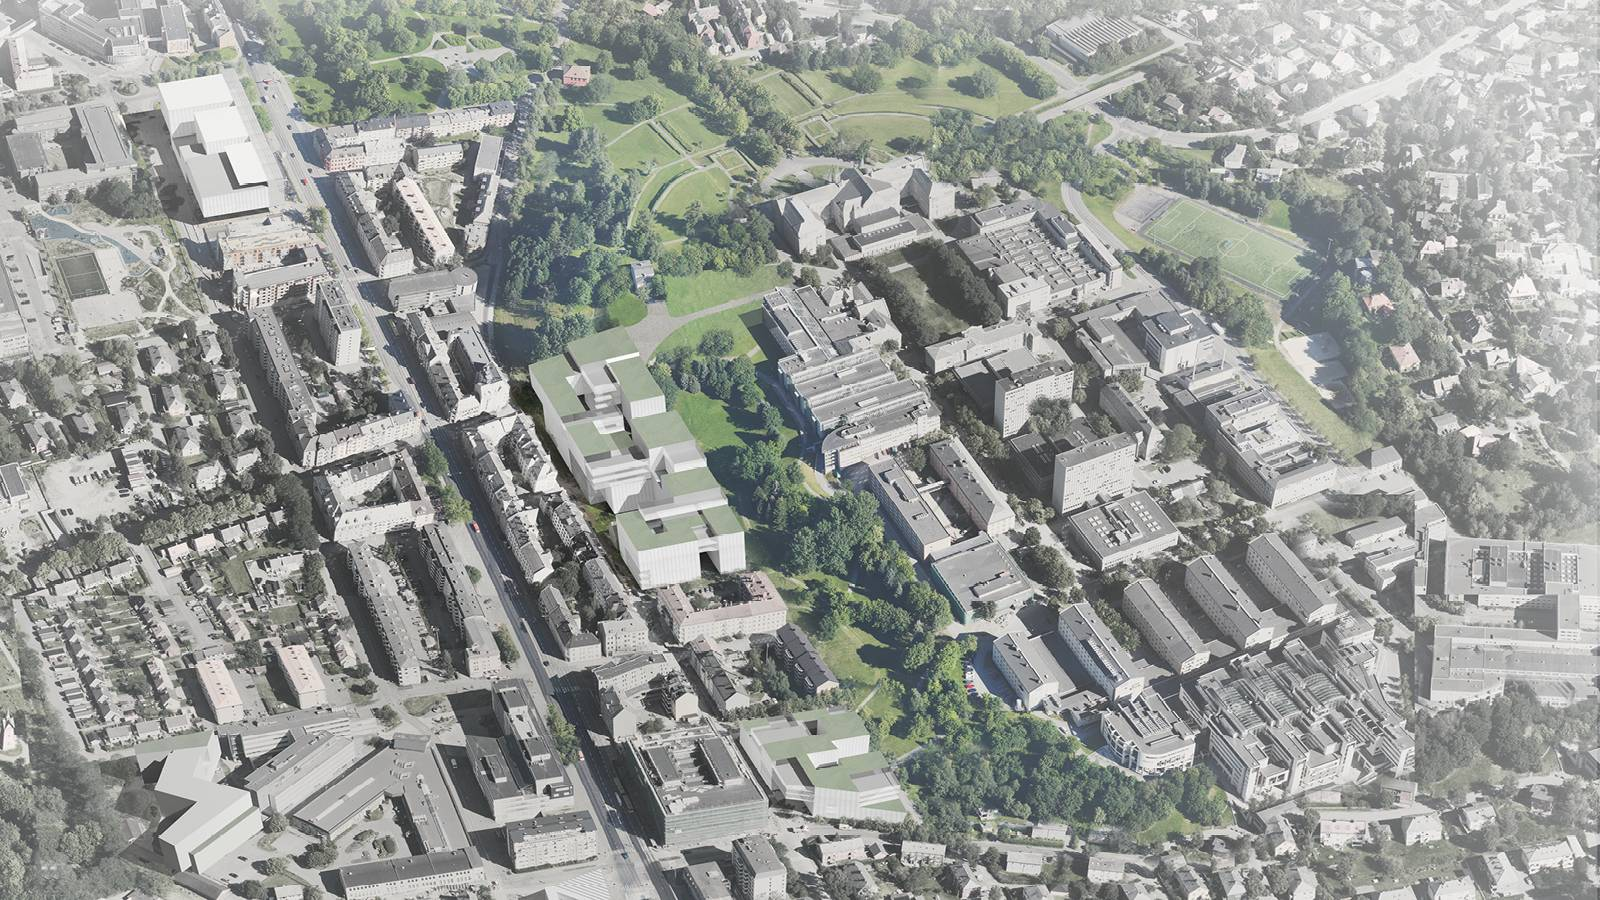 CAMPUS AERIAL VIEW - NTNU – More Park, More City! - SPOL Architects